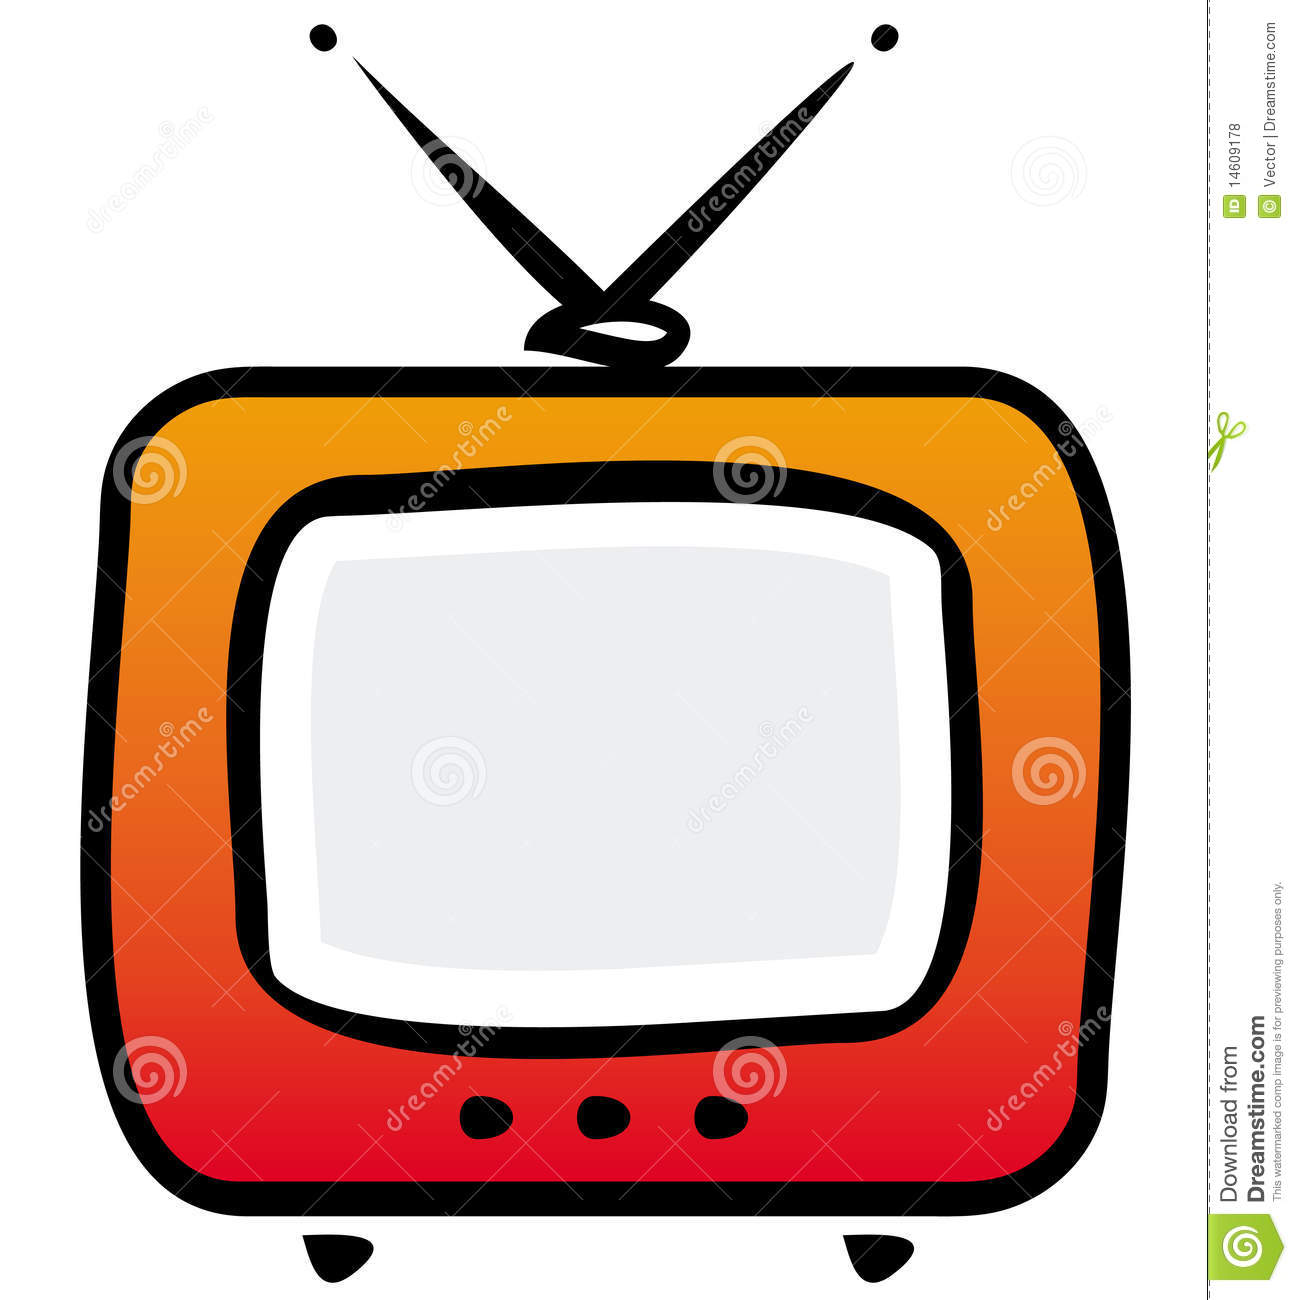 What Time Is It On What Tv: Retro TV-set Illustration Stock Vector. Illustration Of